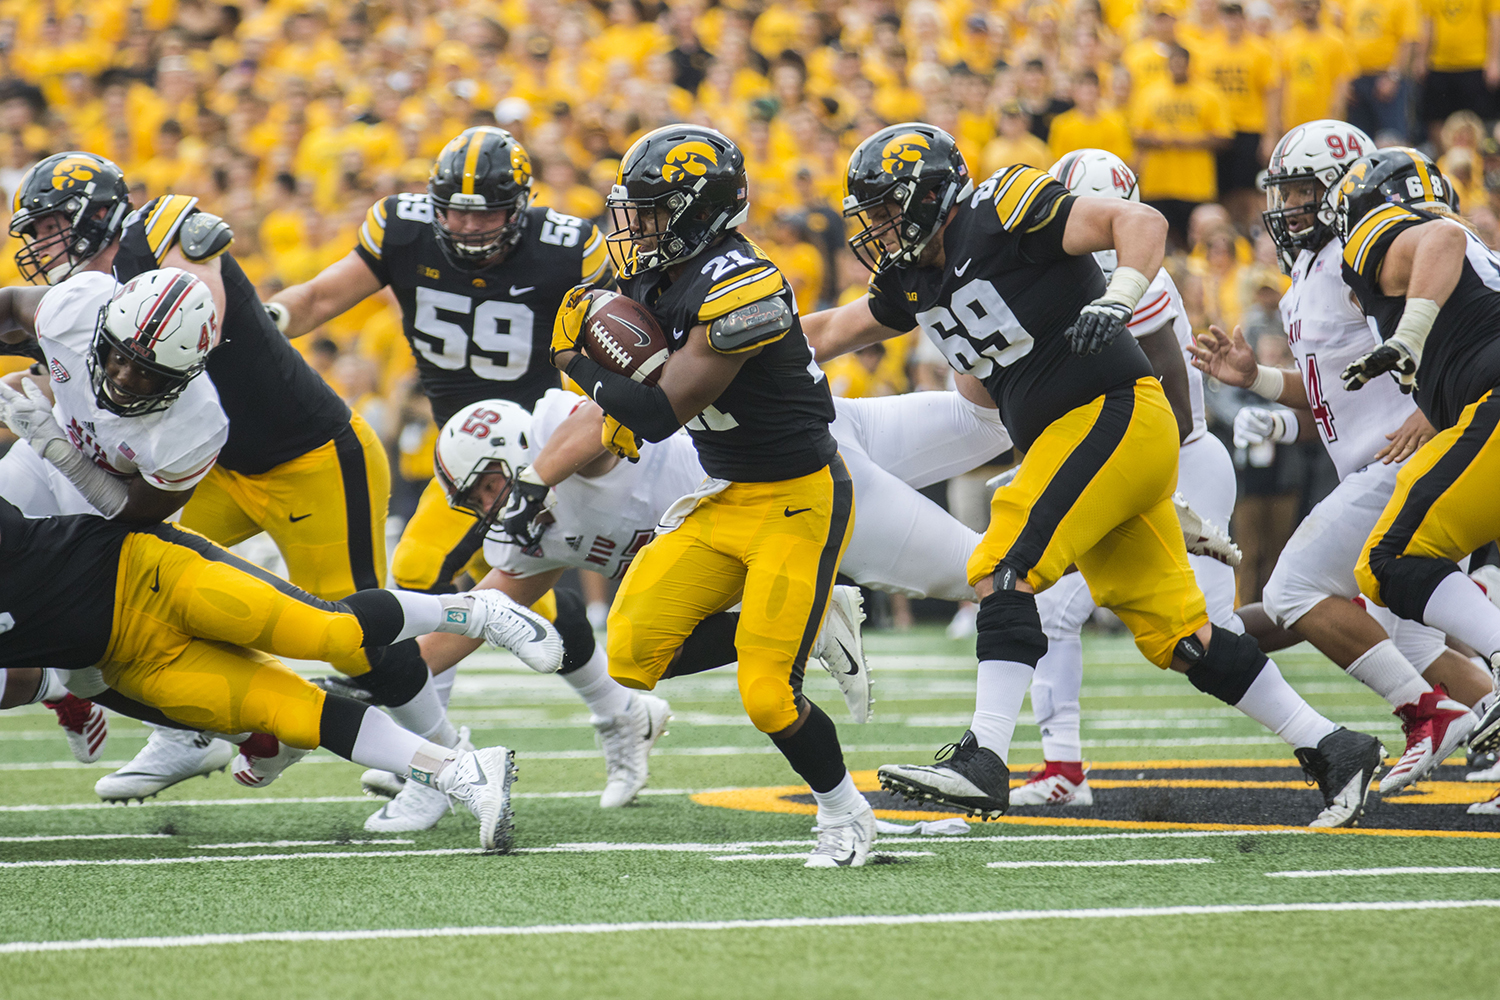 Iowa running back Ivory Kelly-Martin runs with the ball during the Iowa/Northern Iowa football game at Kinnick Stadium on Saturday, Sept. 1, 2018. The Hawkeyes defeated the Huskies, 33-7.